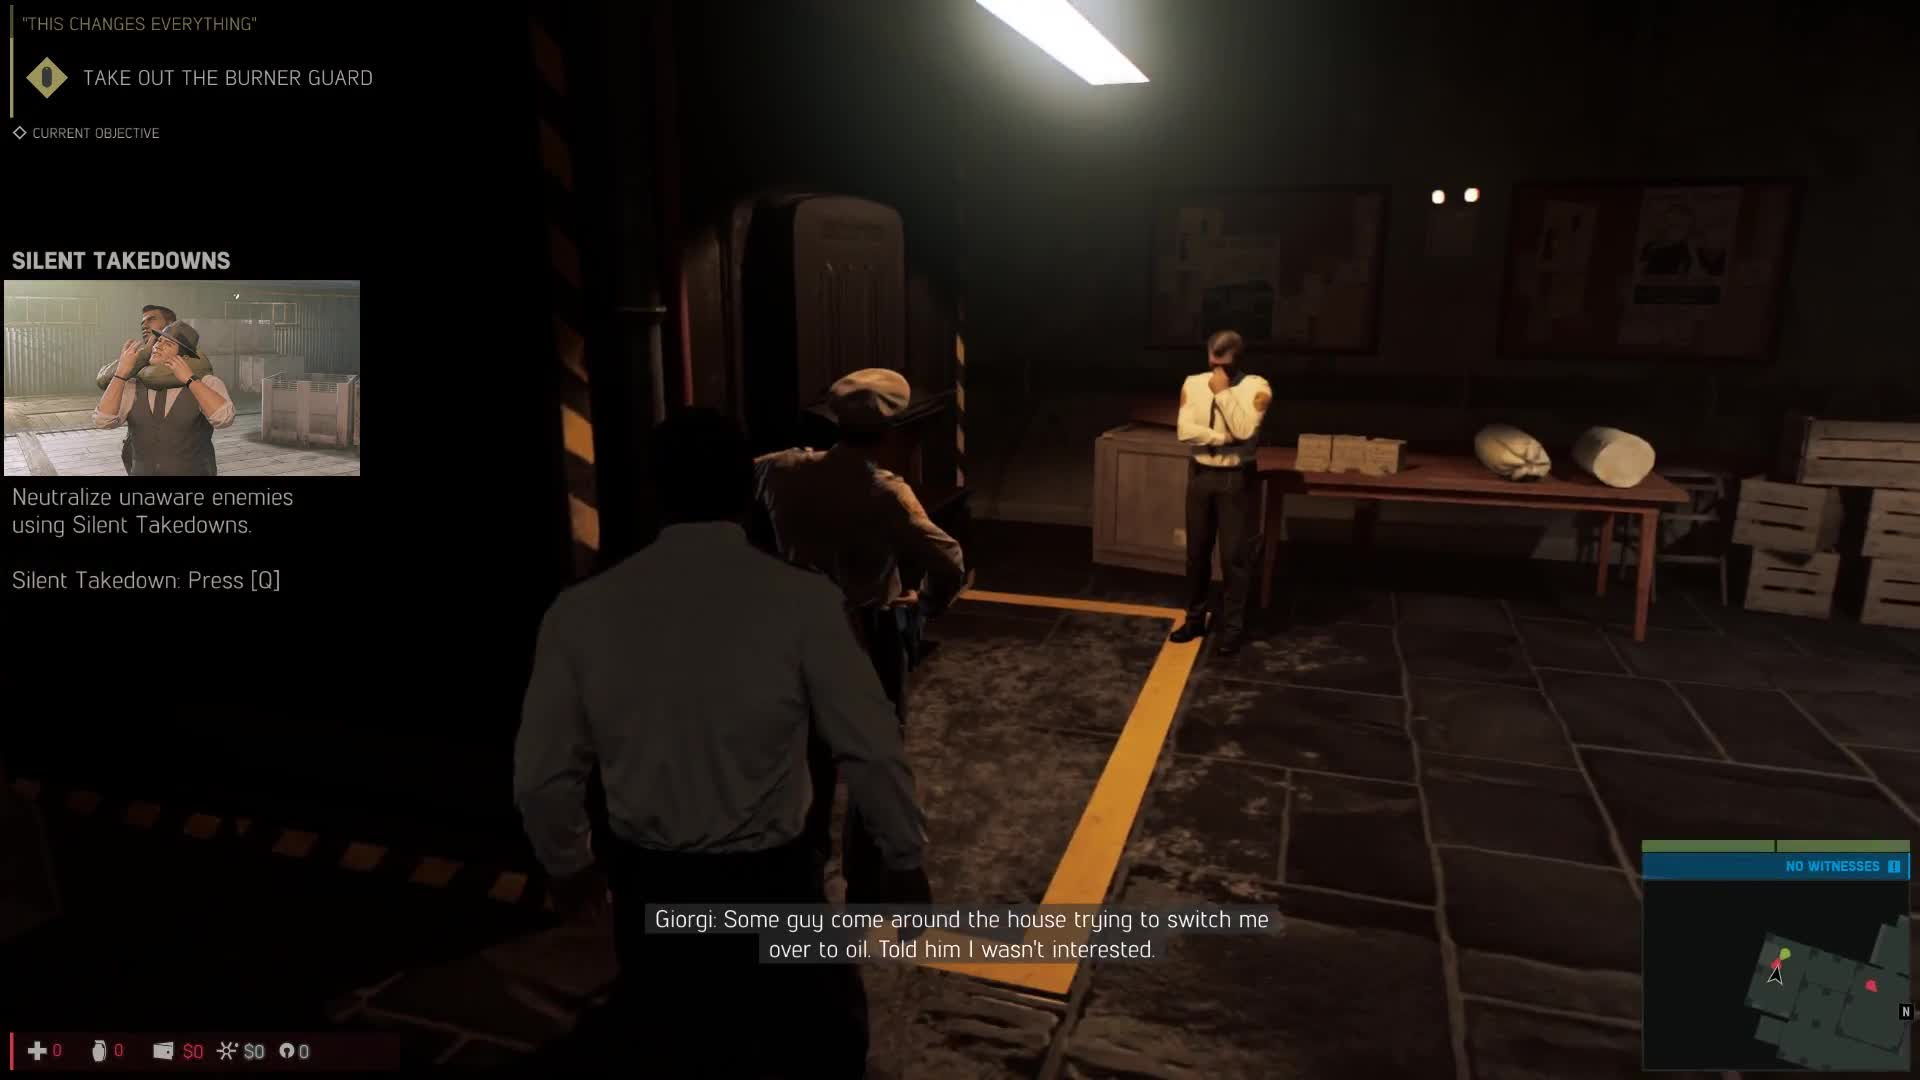 Ainis112, Gaming, mafia 3, mafia 3 gameplay, mafia3, Mafia 3 First Mission Gameplay GIFs